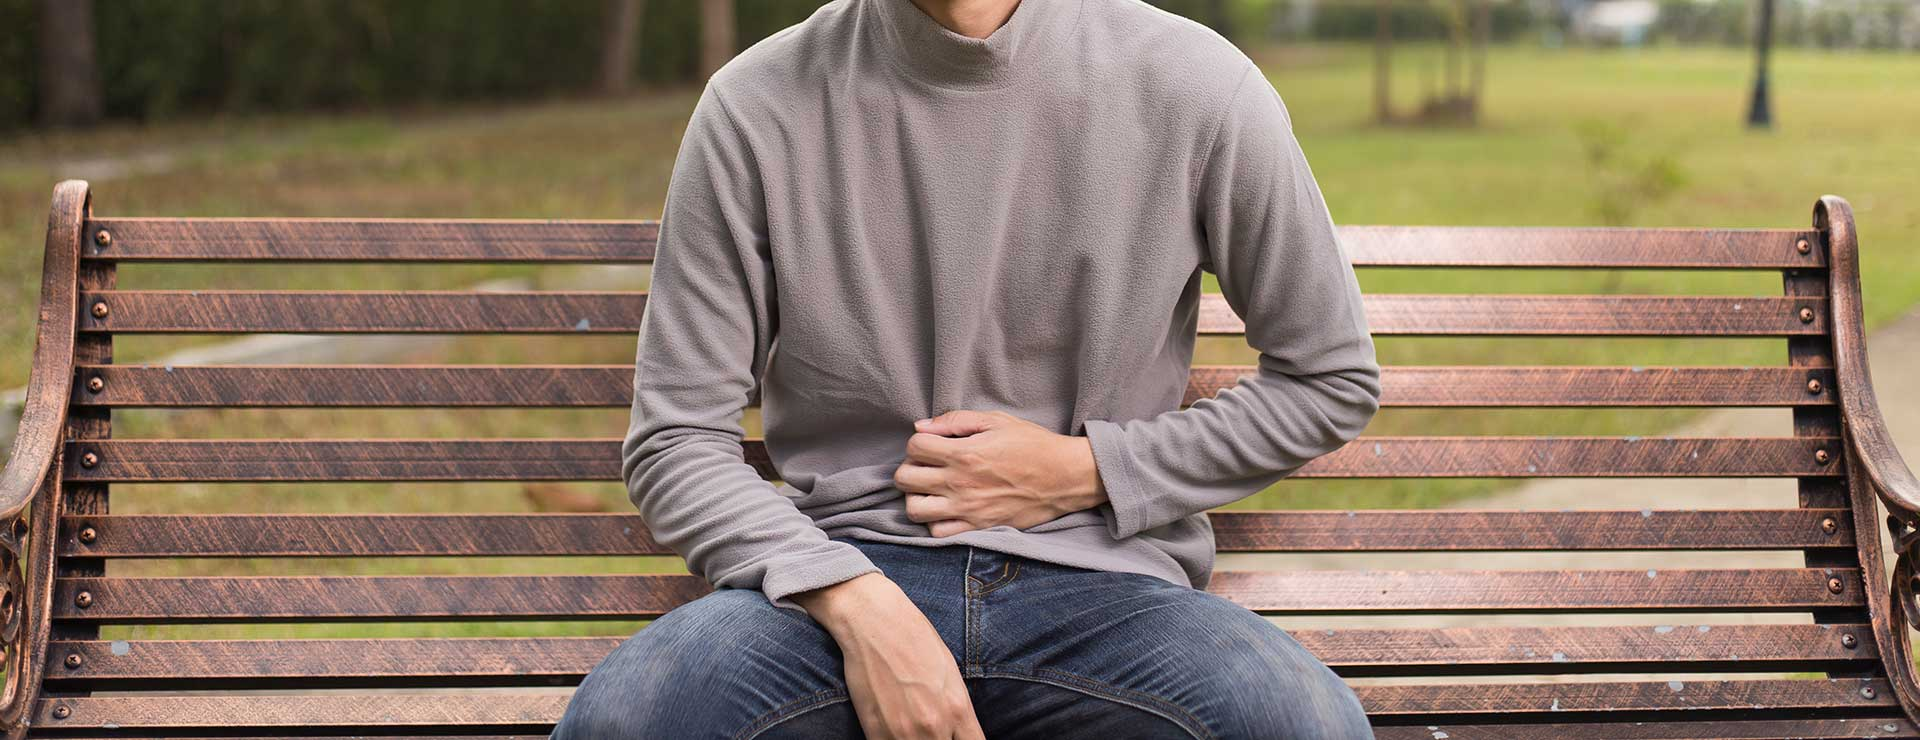 A young man sits on a bench outside, holding his stomach in pain.